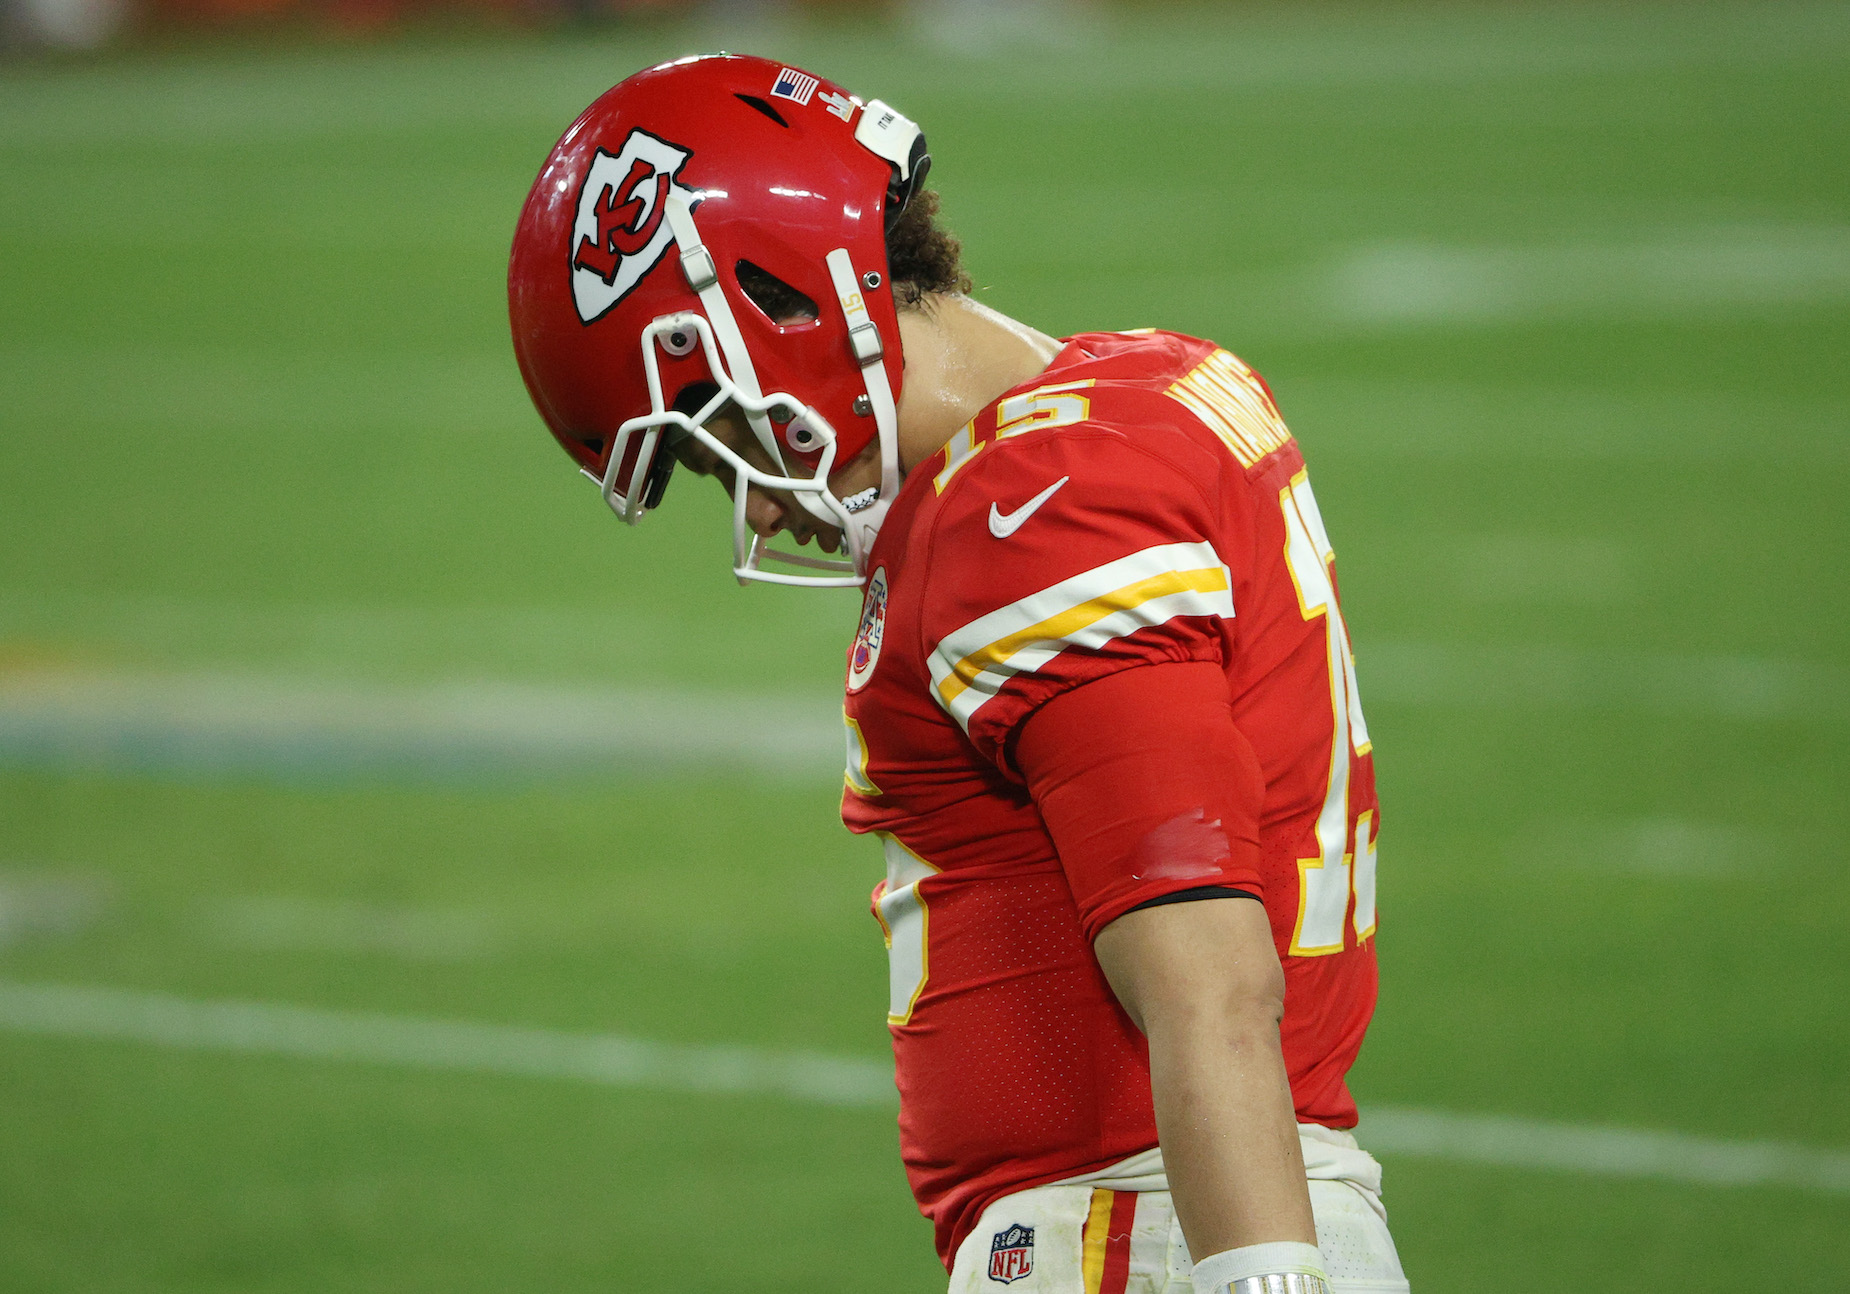 Patrick Mahomes Just Got Some Brutal News About His Kansas City Chiefs Offense Ahead of the 2021 NFL Season